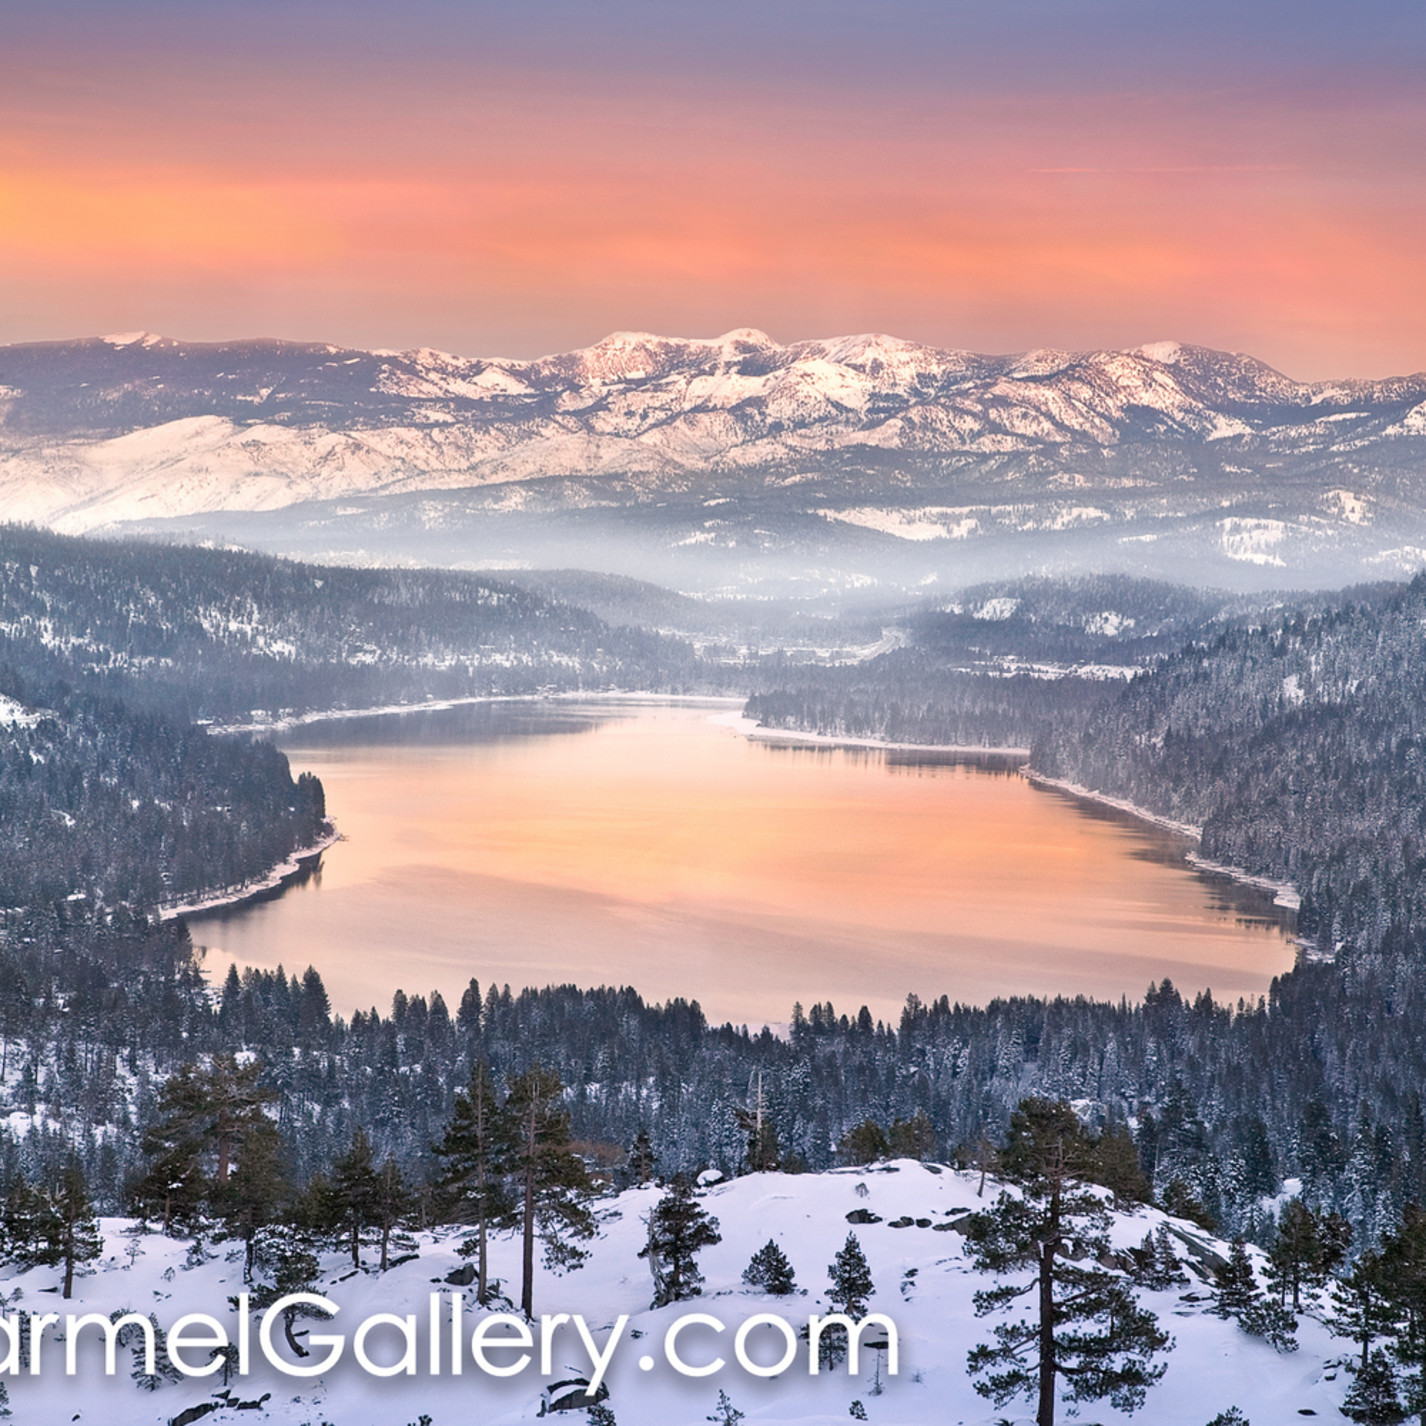 Afterglow donner lake ezzqvh